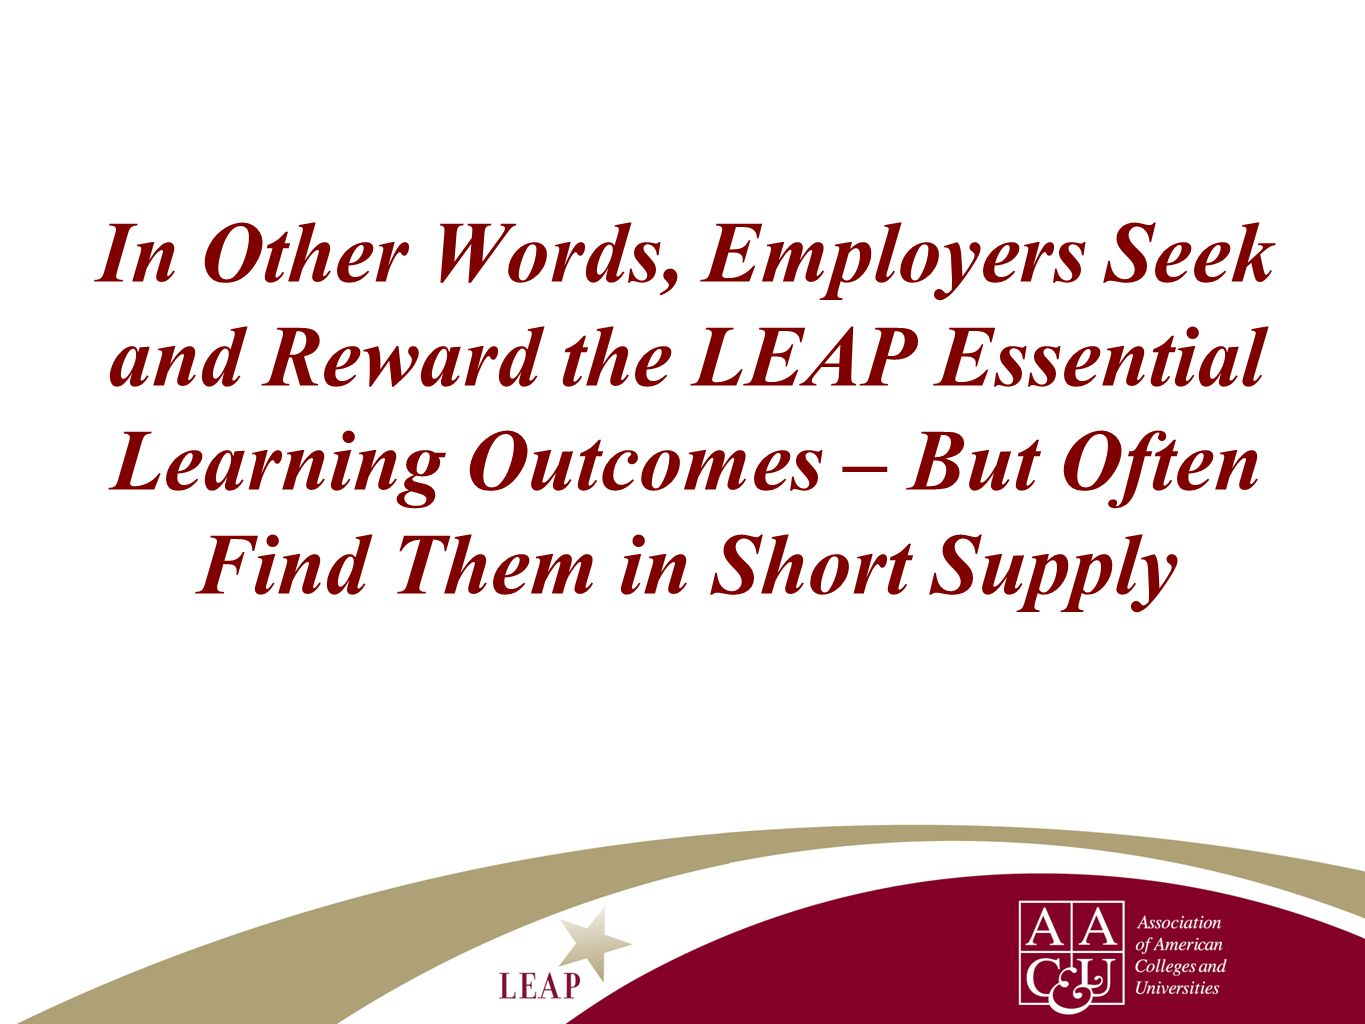 In Other Words, Employers Seek and Reward the LEAP Essential Learning Outcomes – But Often Find Them in Short Supply